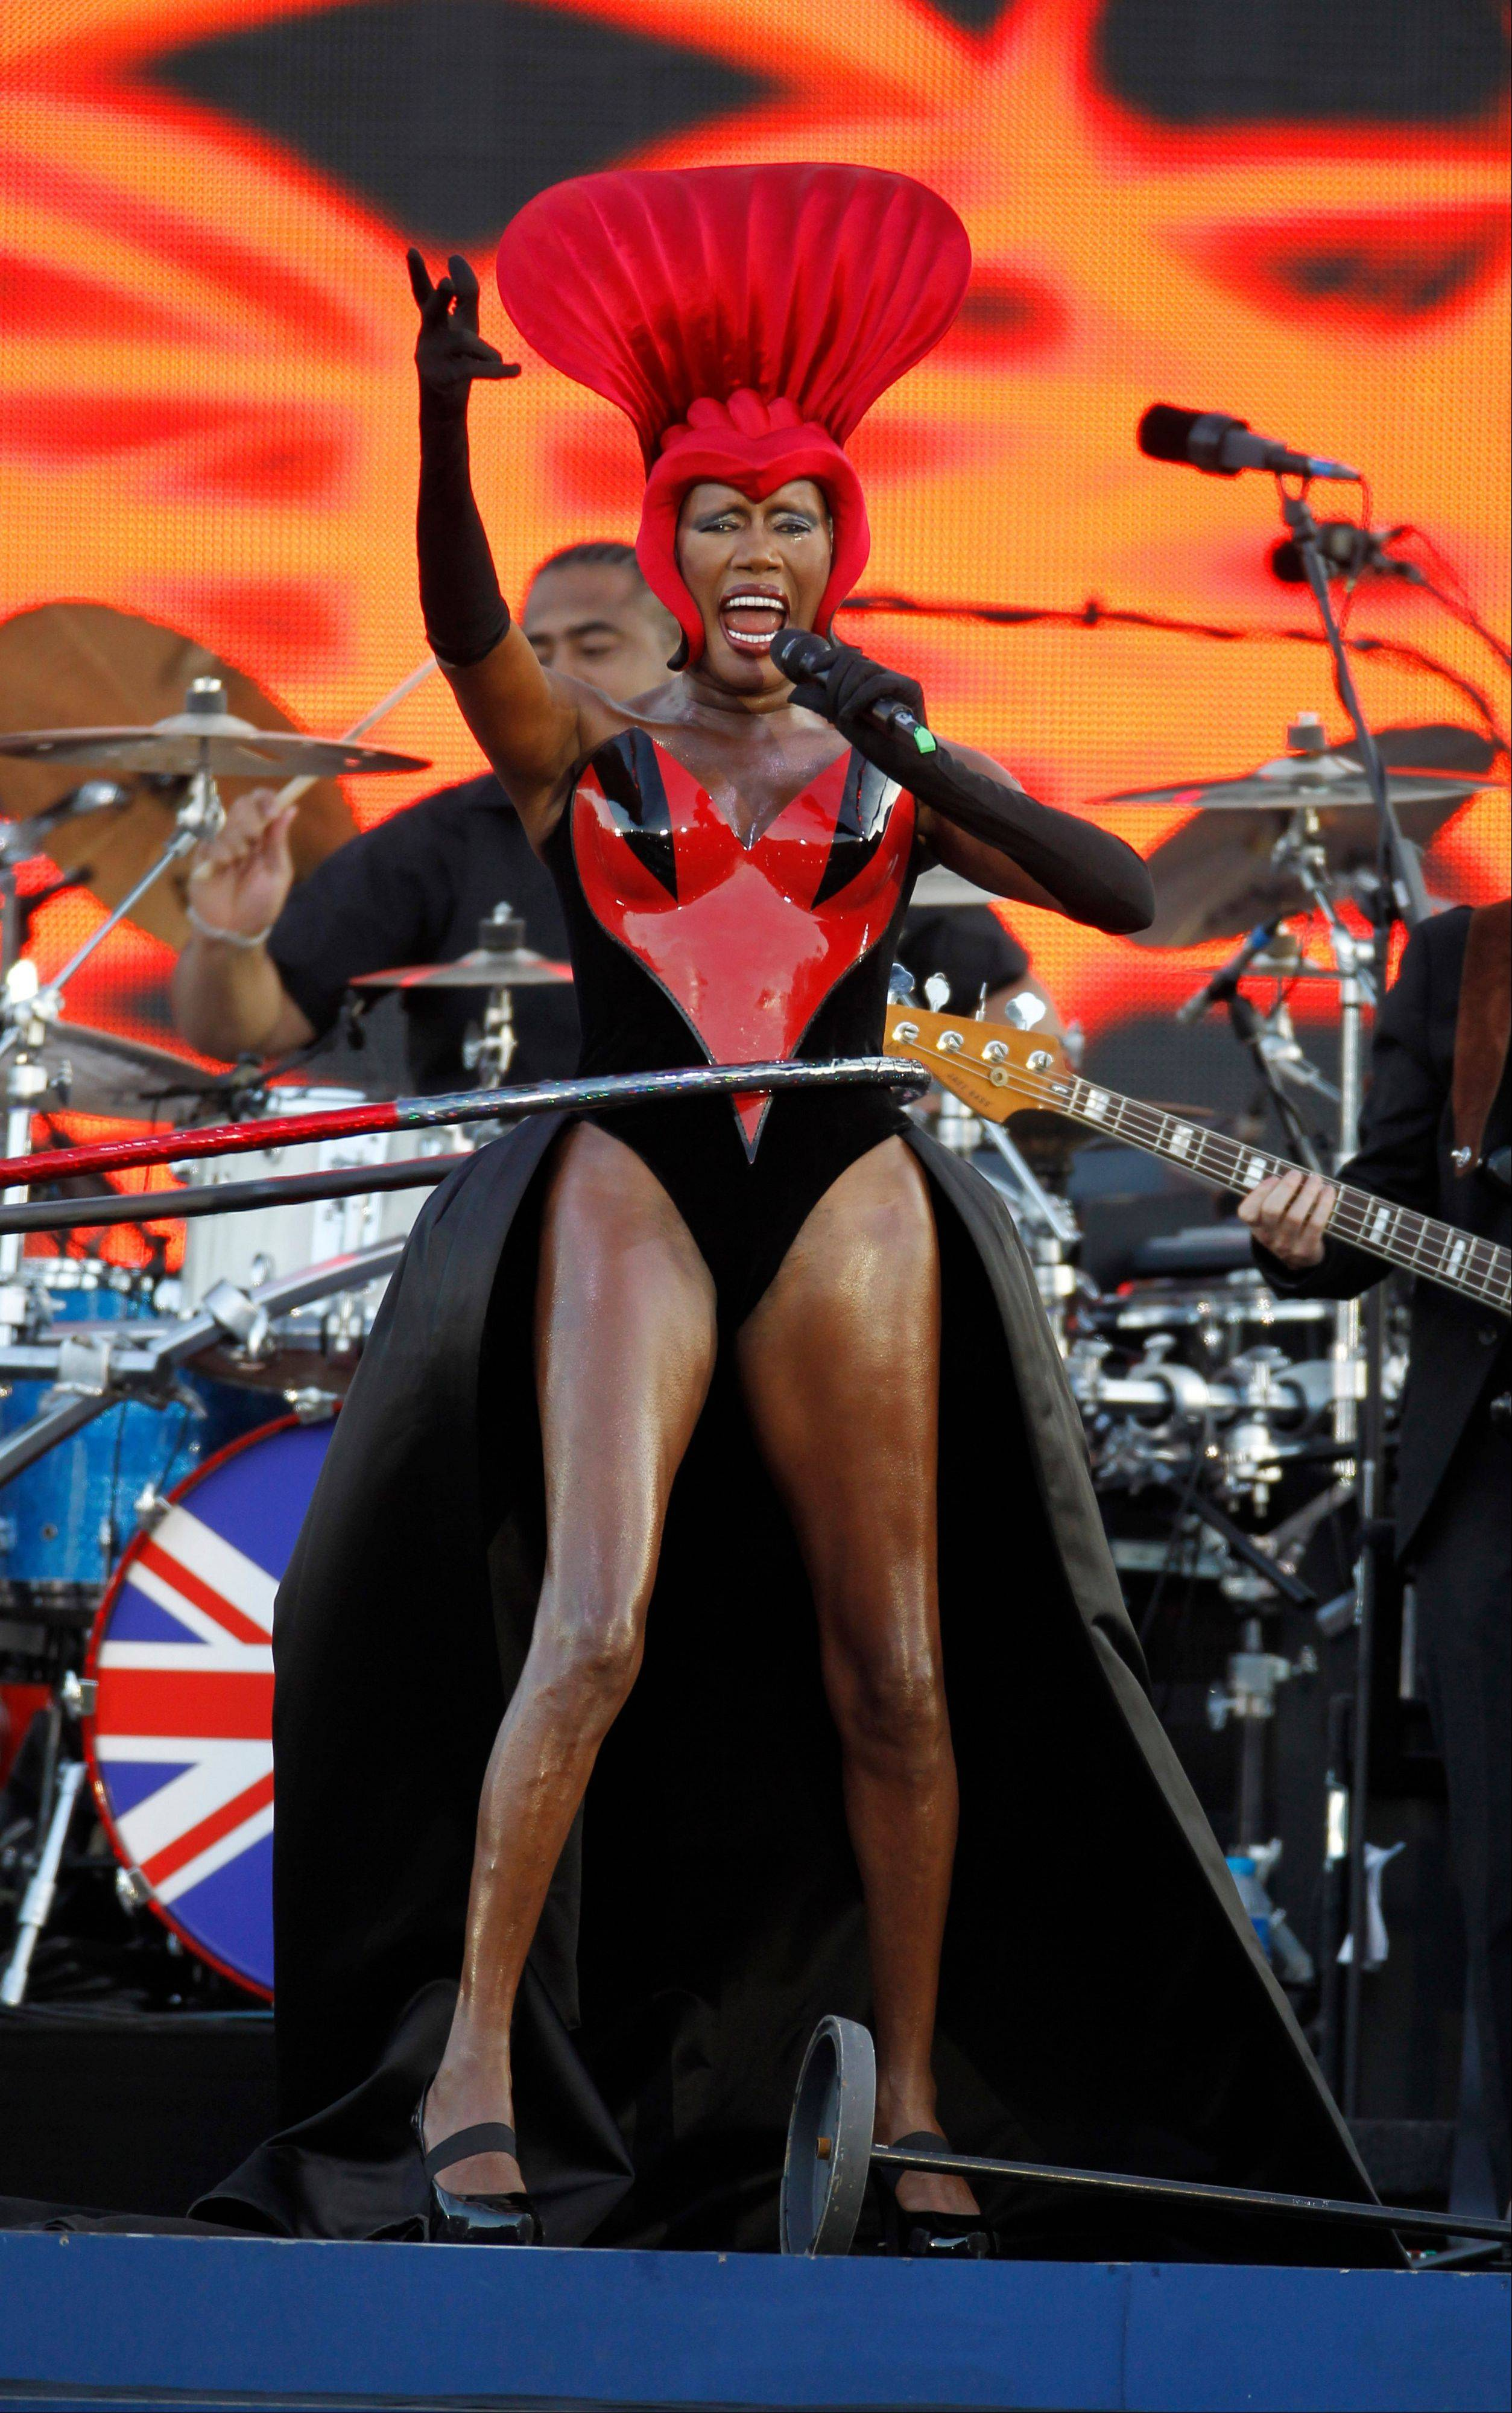 Grace Jones performs at the Queen's Jubilee Concert in front of Buckingham Palace, London, Monday, June 4, 2012. The concert is a part of four days of celebrations to mark the 60-year reign of Britain's Queen Elizabeth II.